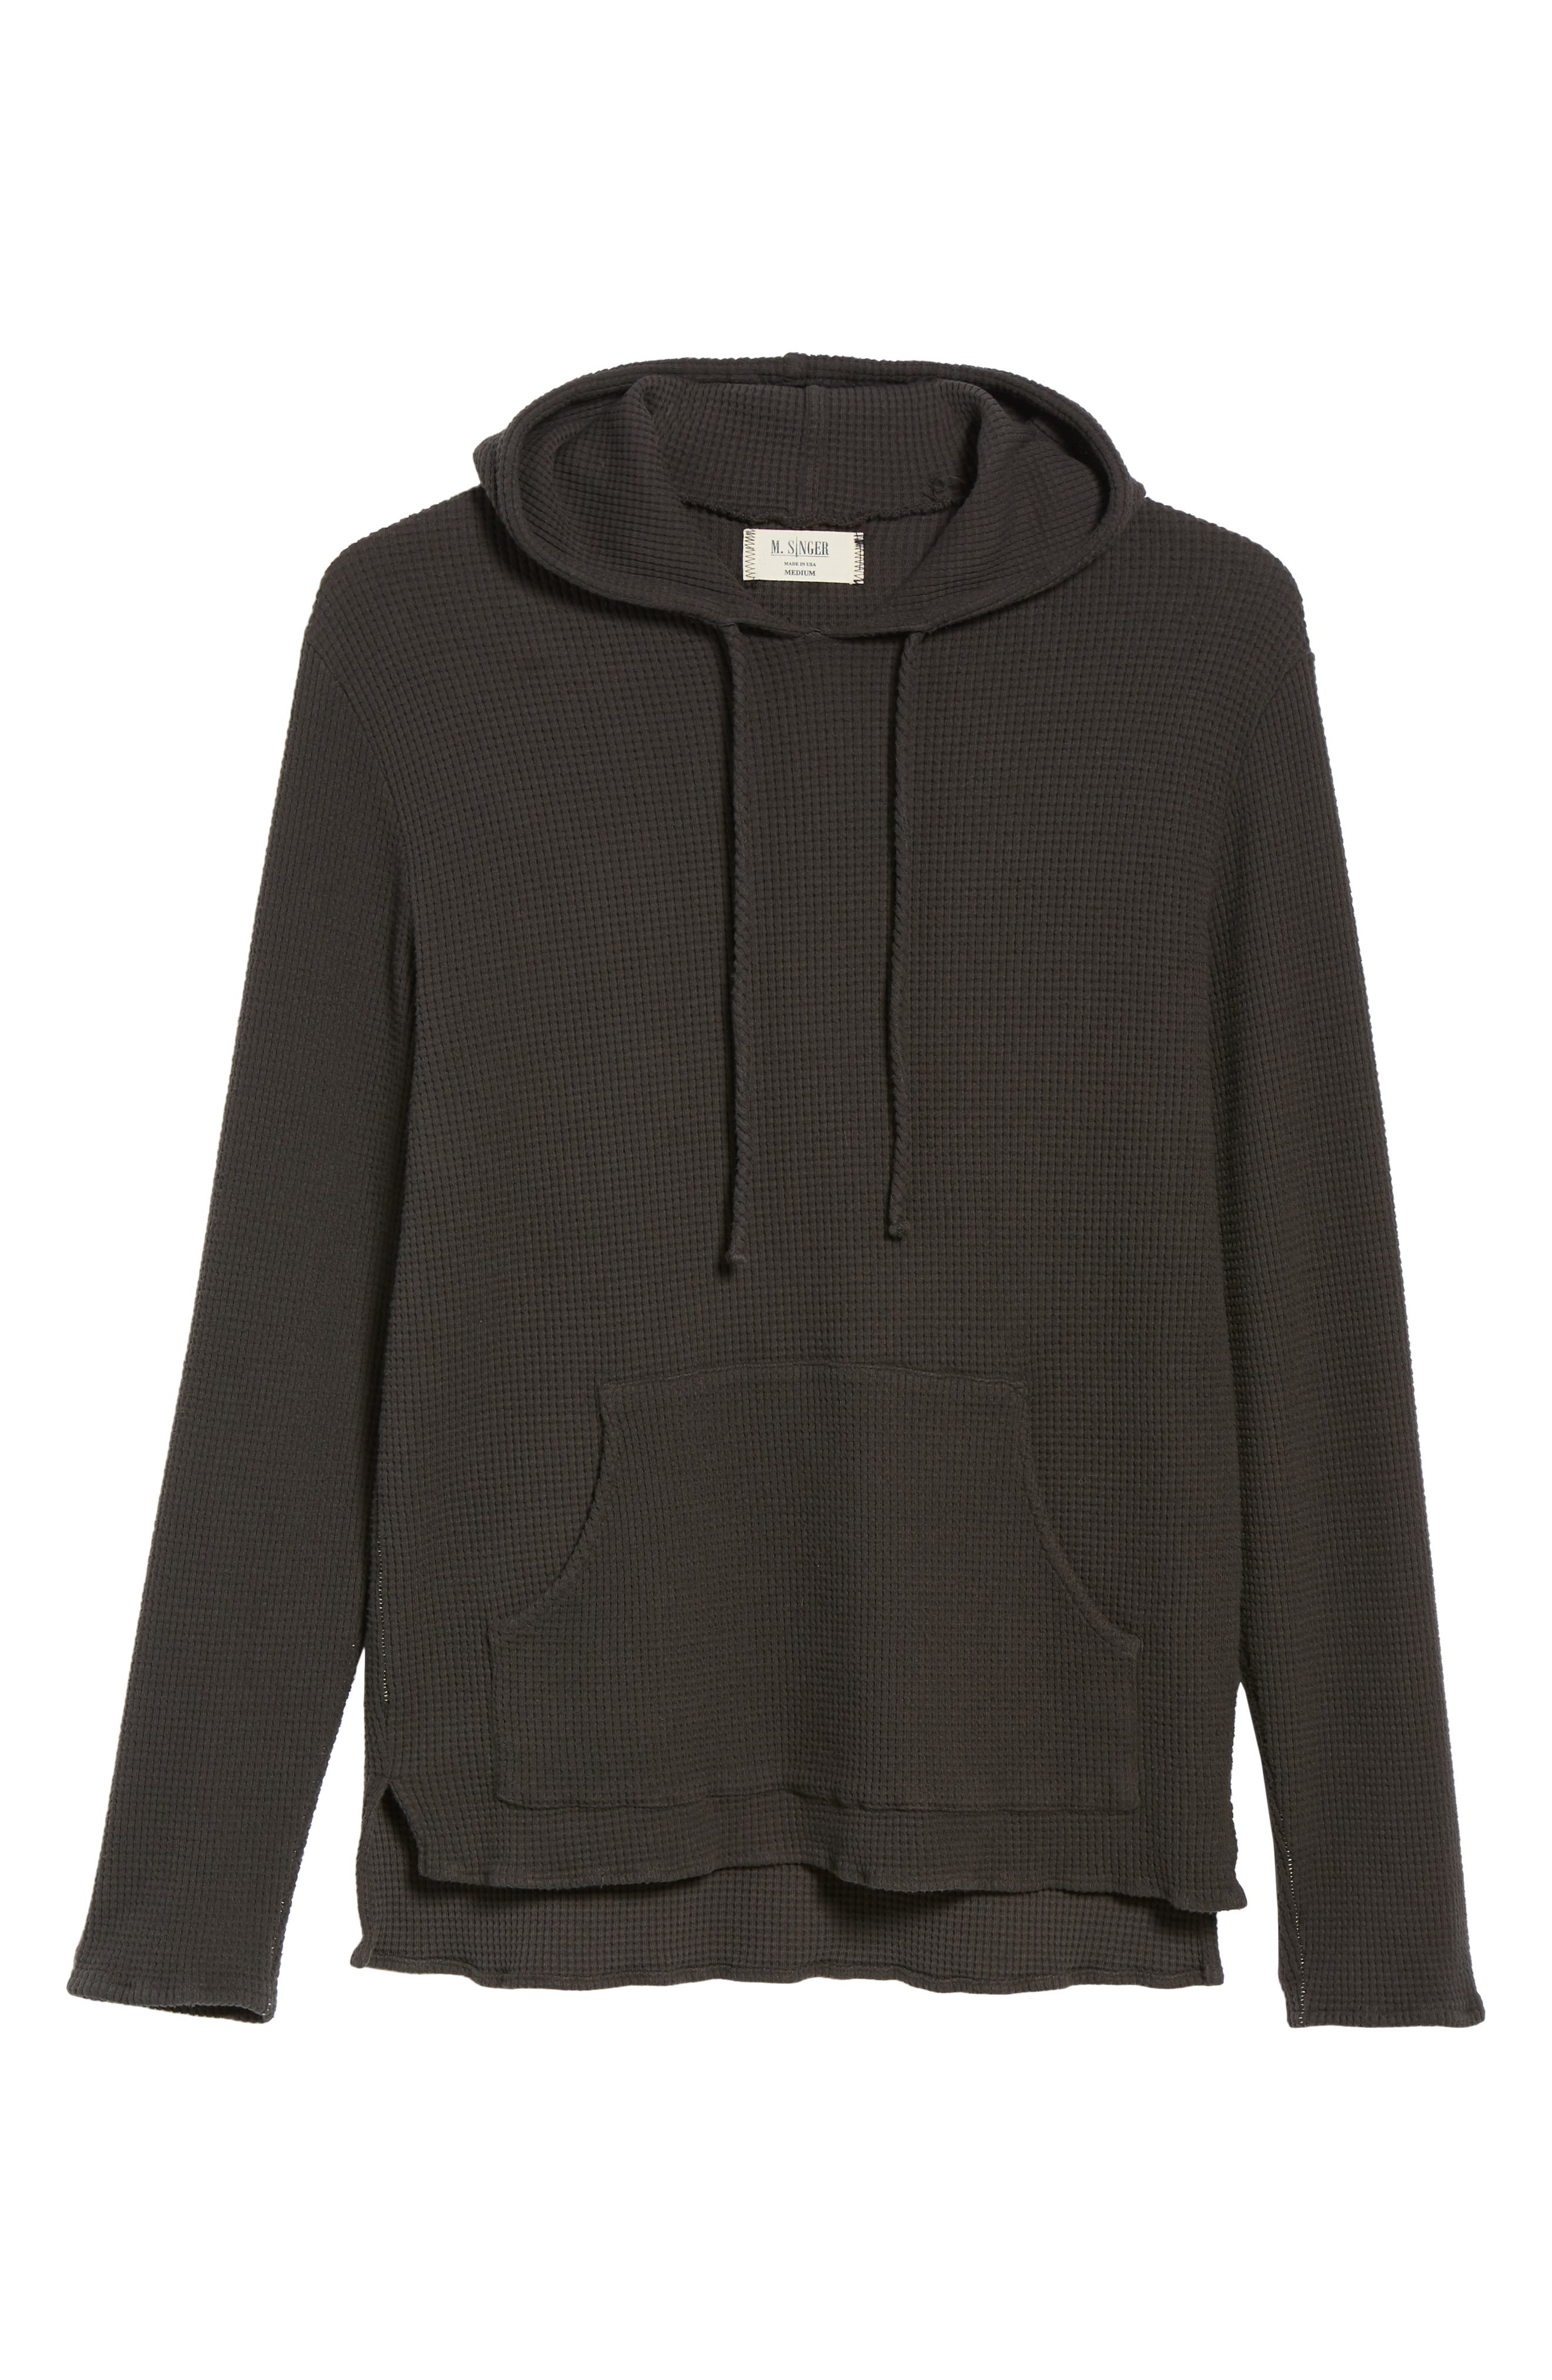 Thermal Knit Pullover Hoodie,                             Alternate thumbnail 6, color,                             020